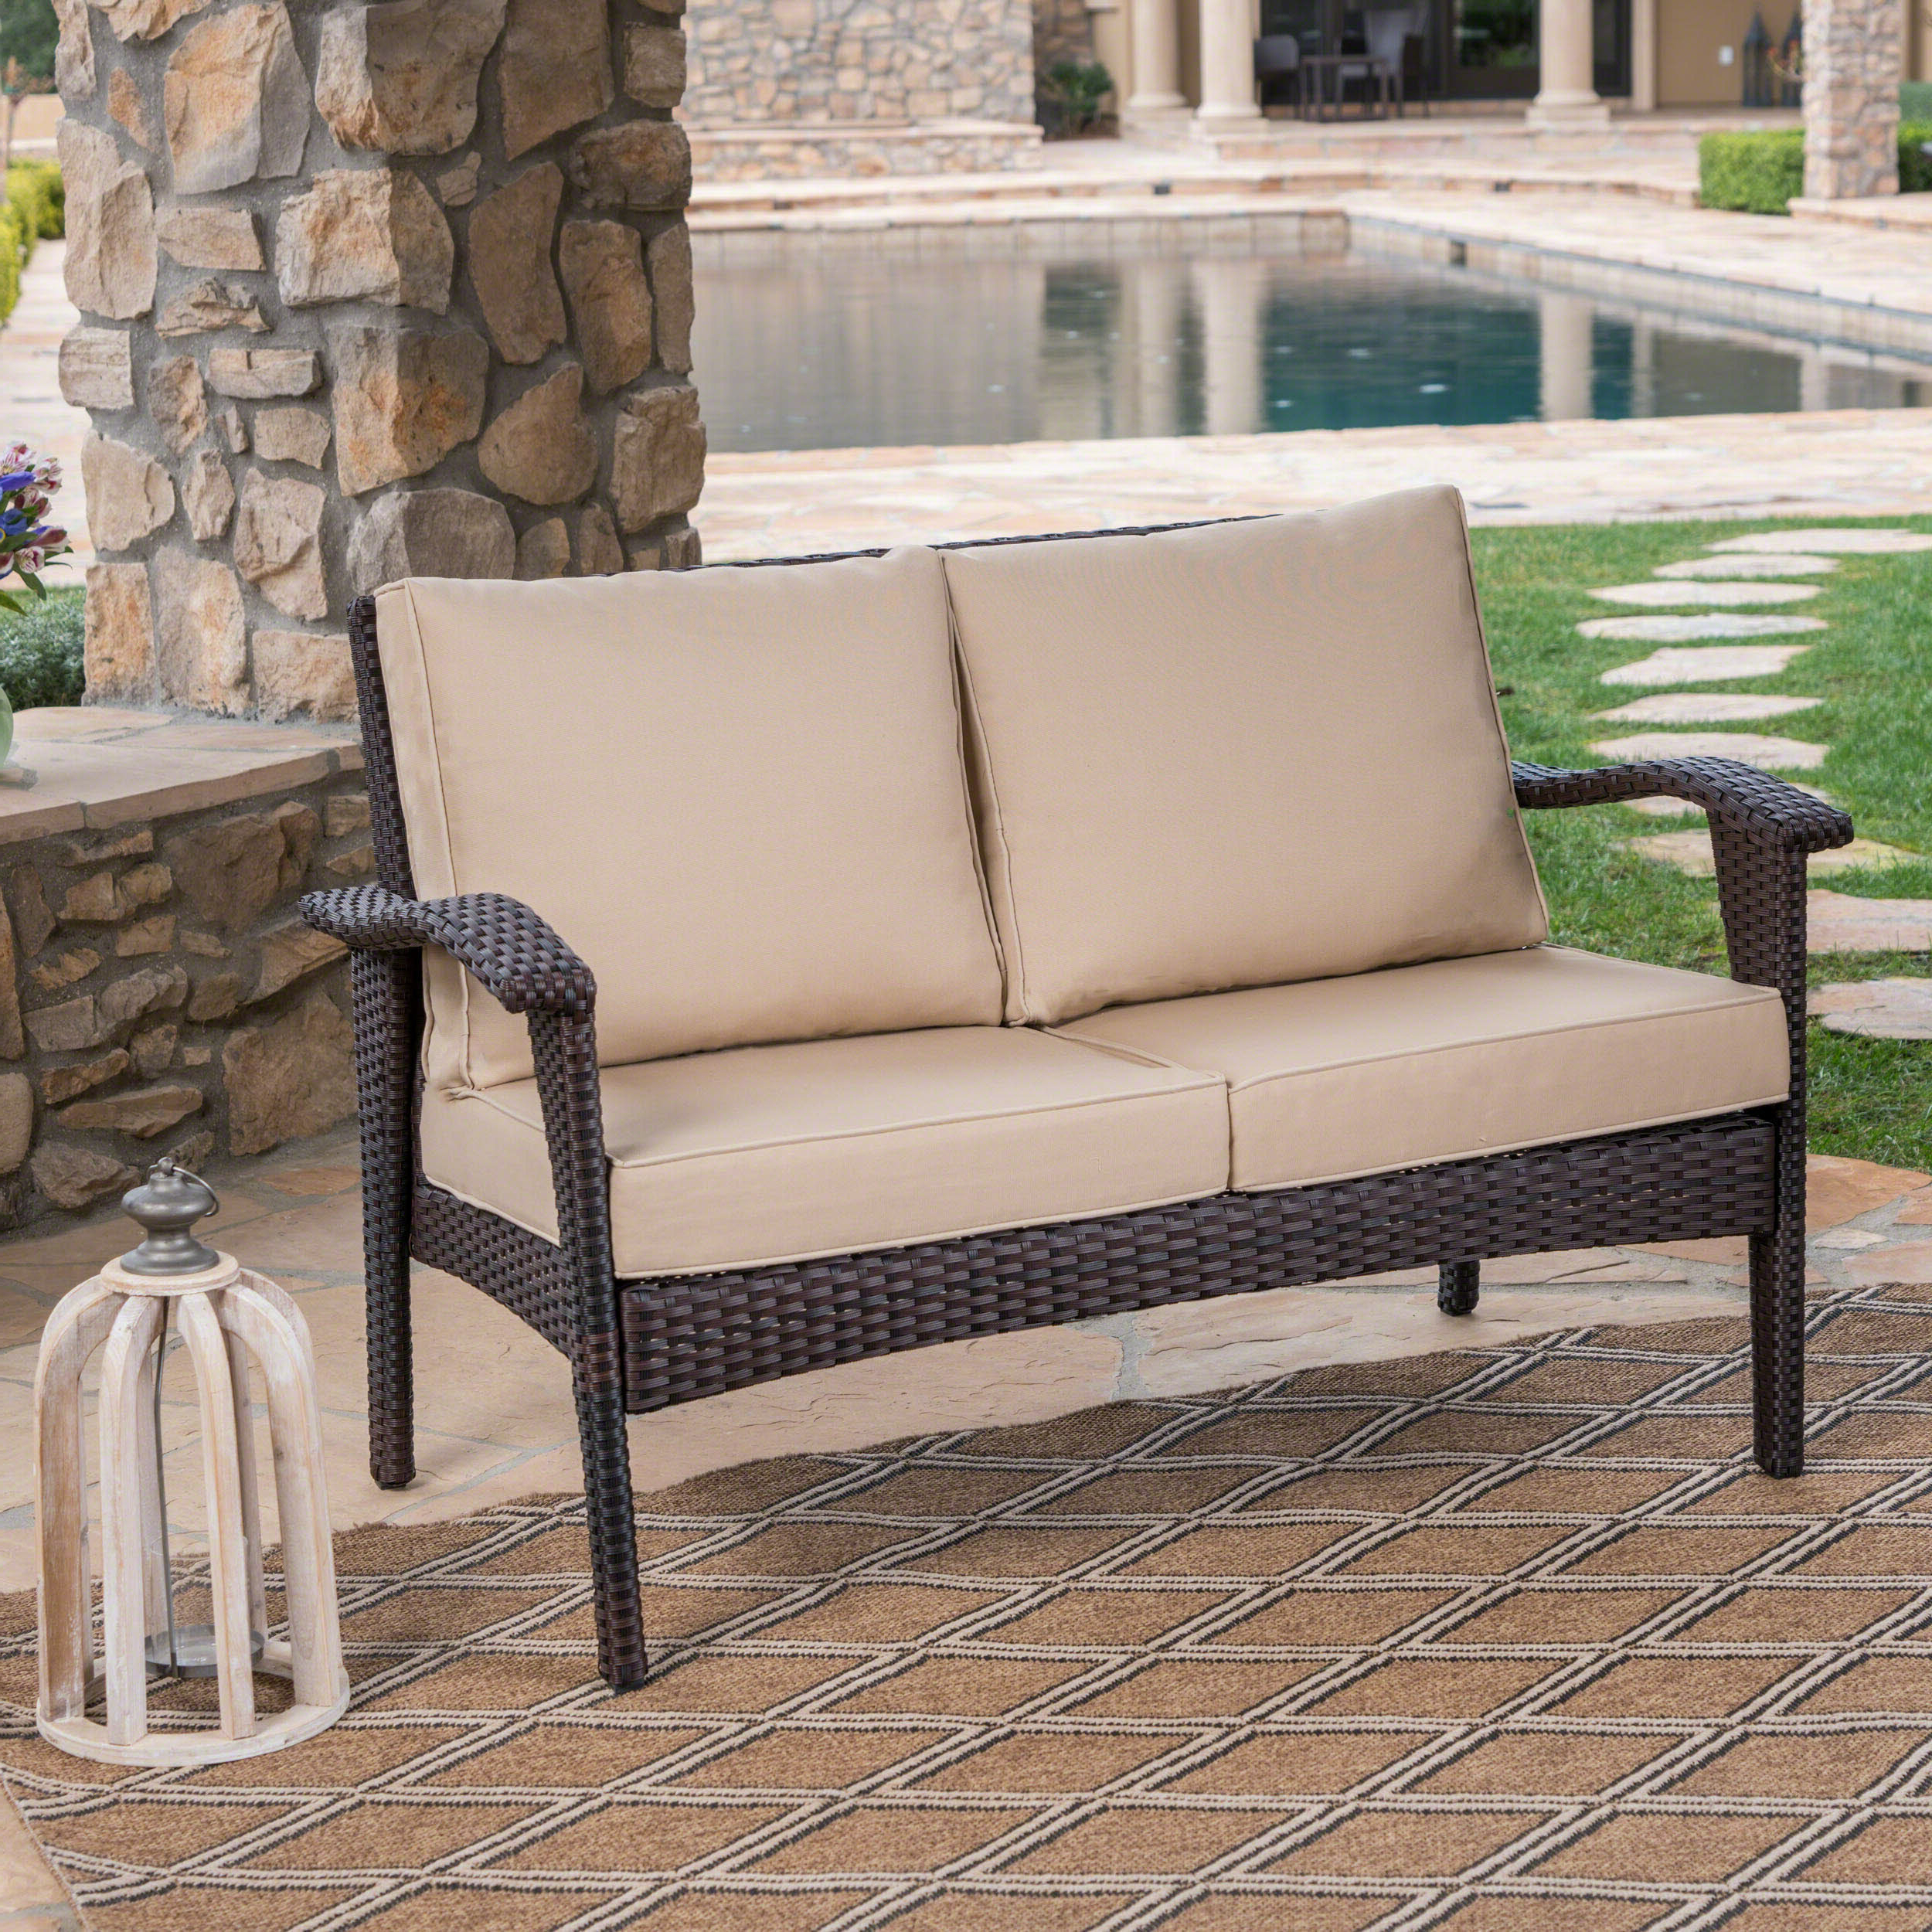 Salvato Sofas With Cushion In Most Popular Hagler Outdoor Loveseat With Cushions (View 15 of 25)